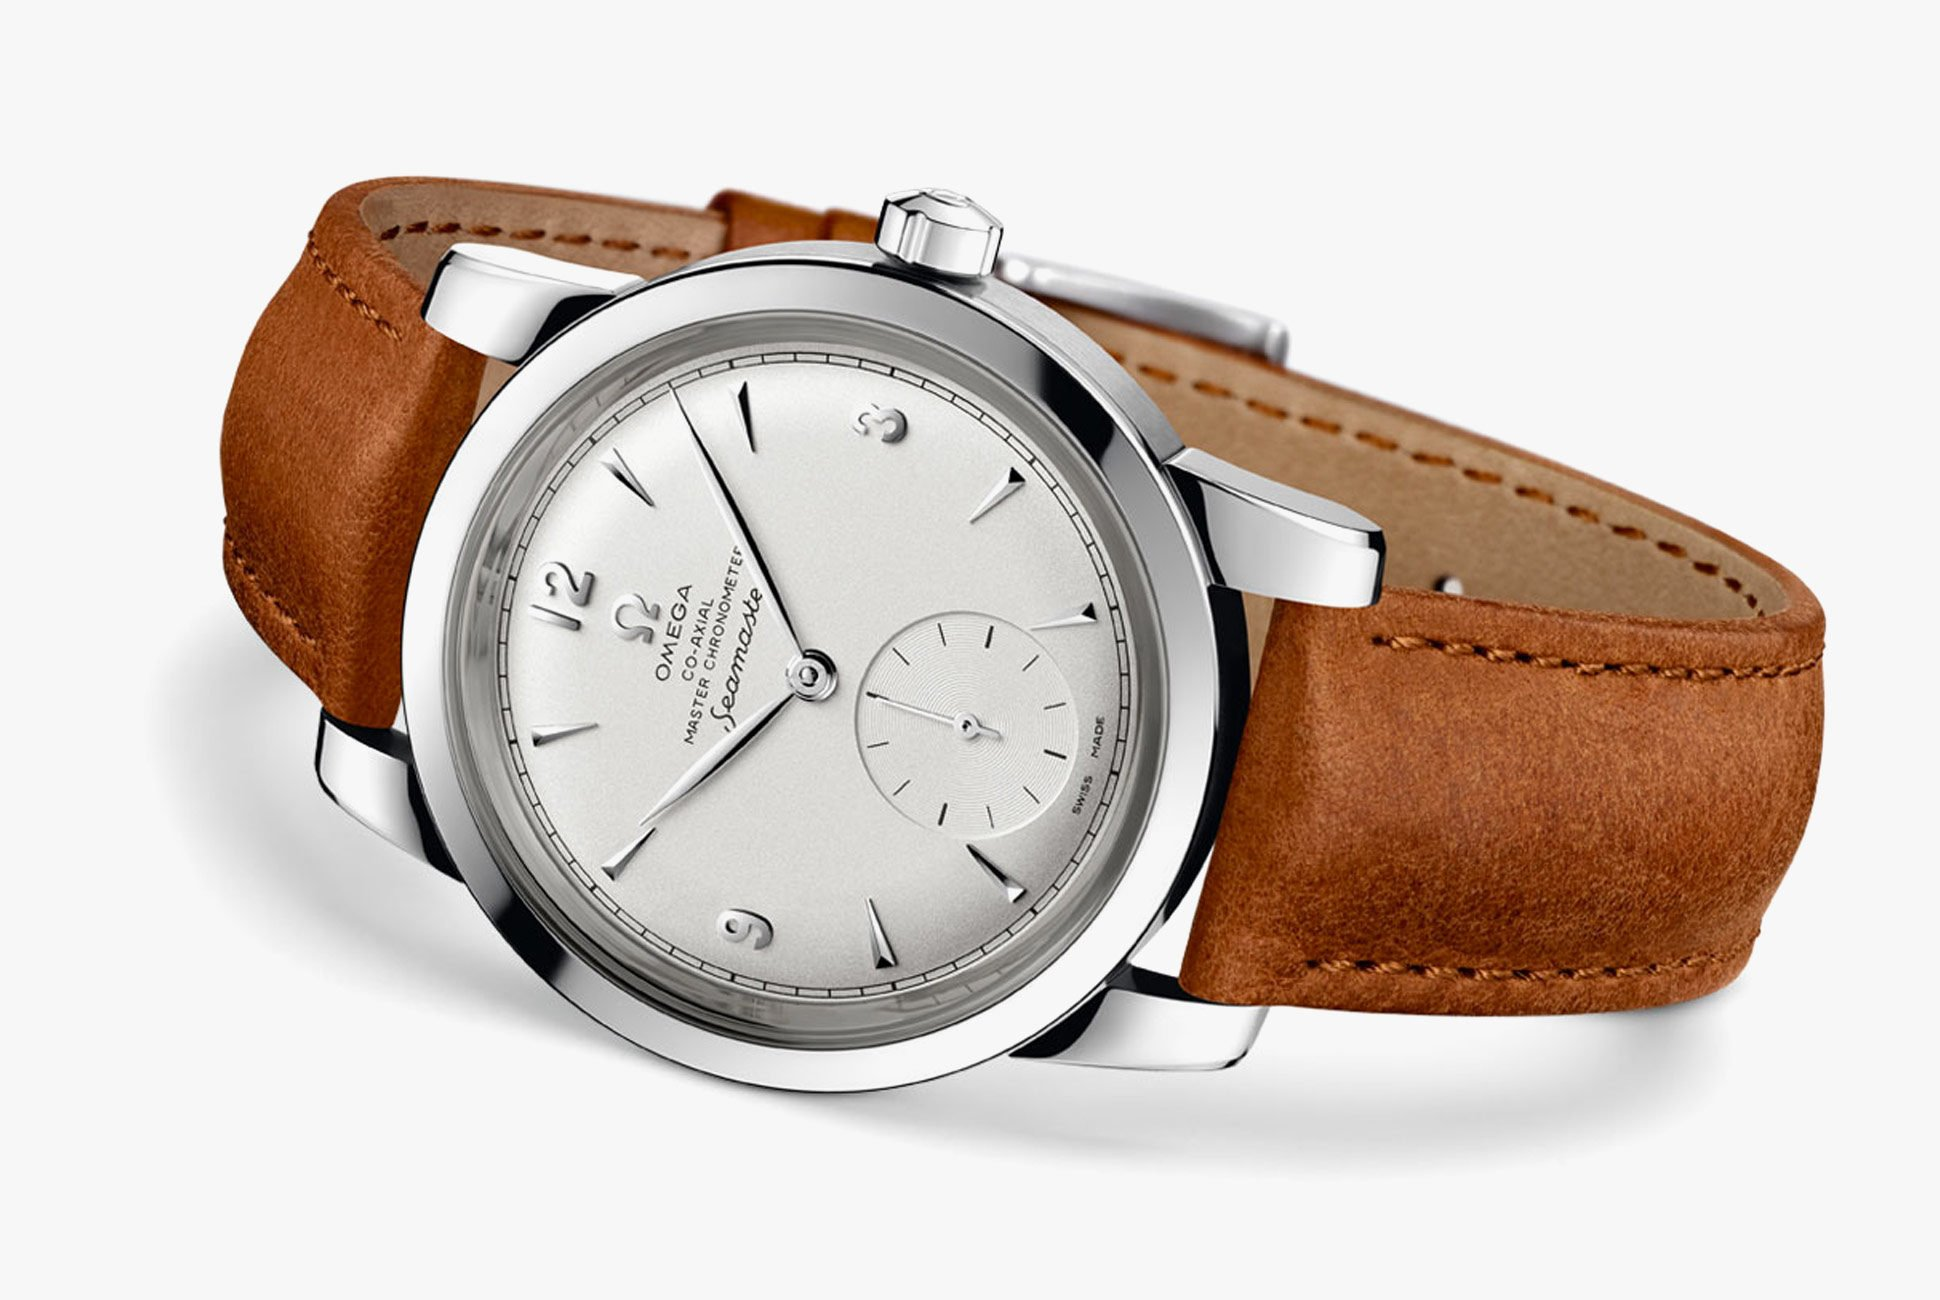 Omega reissued their original Seamaster at Baselworld 2018